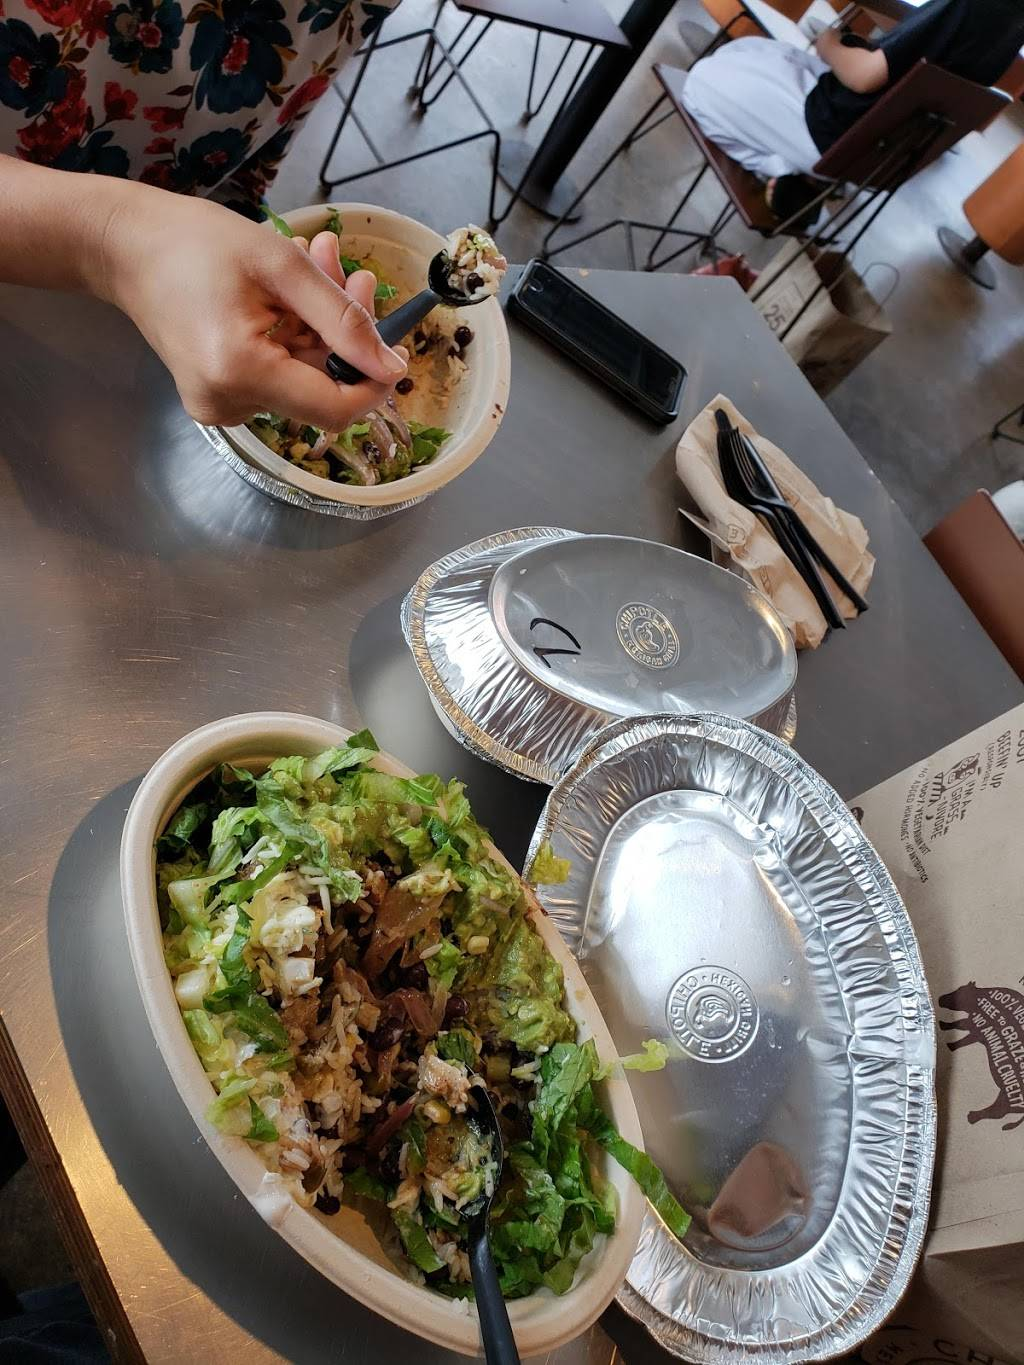 Chipotle Mexican Grill   restaurant   241 Pottstown Pike, Exton, PA 19341, USA   6109034735 OR +1 610-903-4735